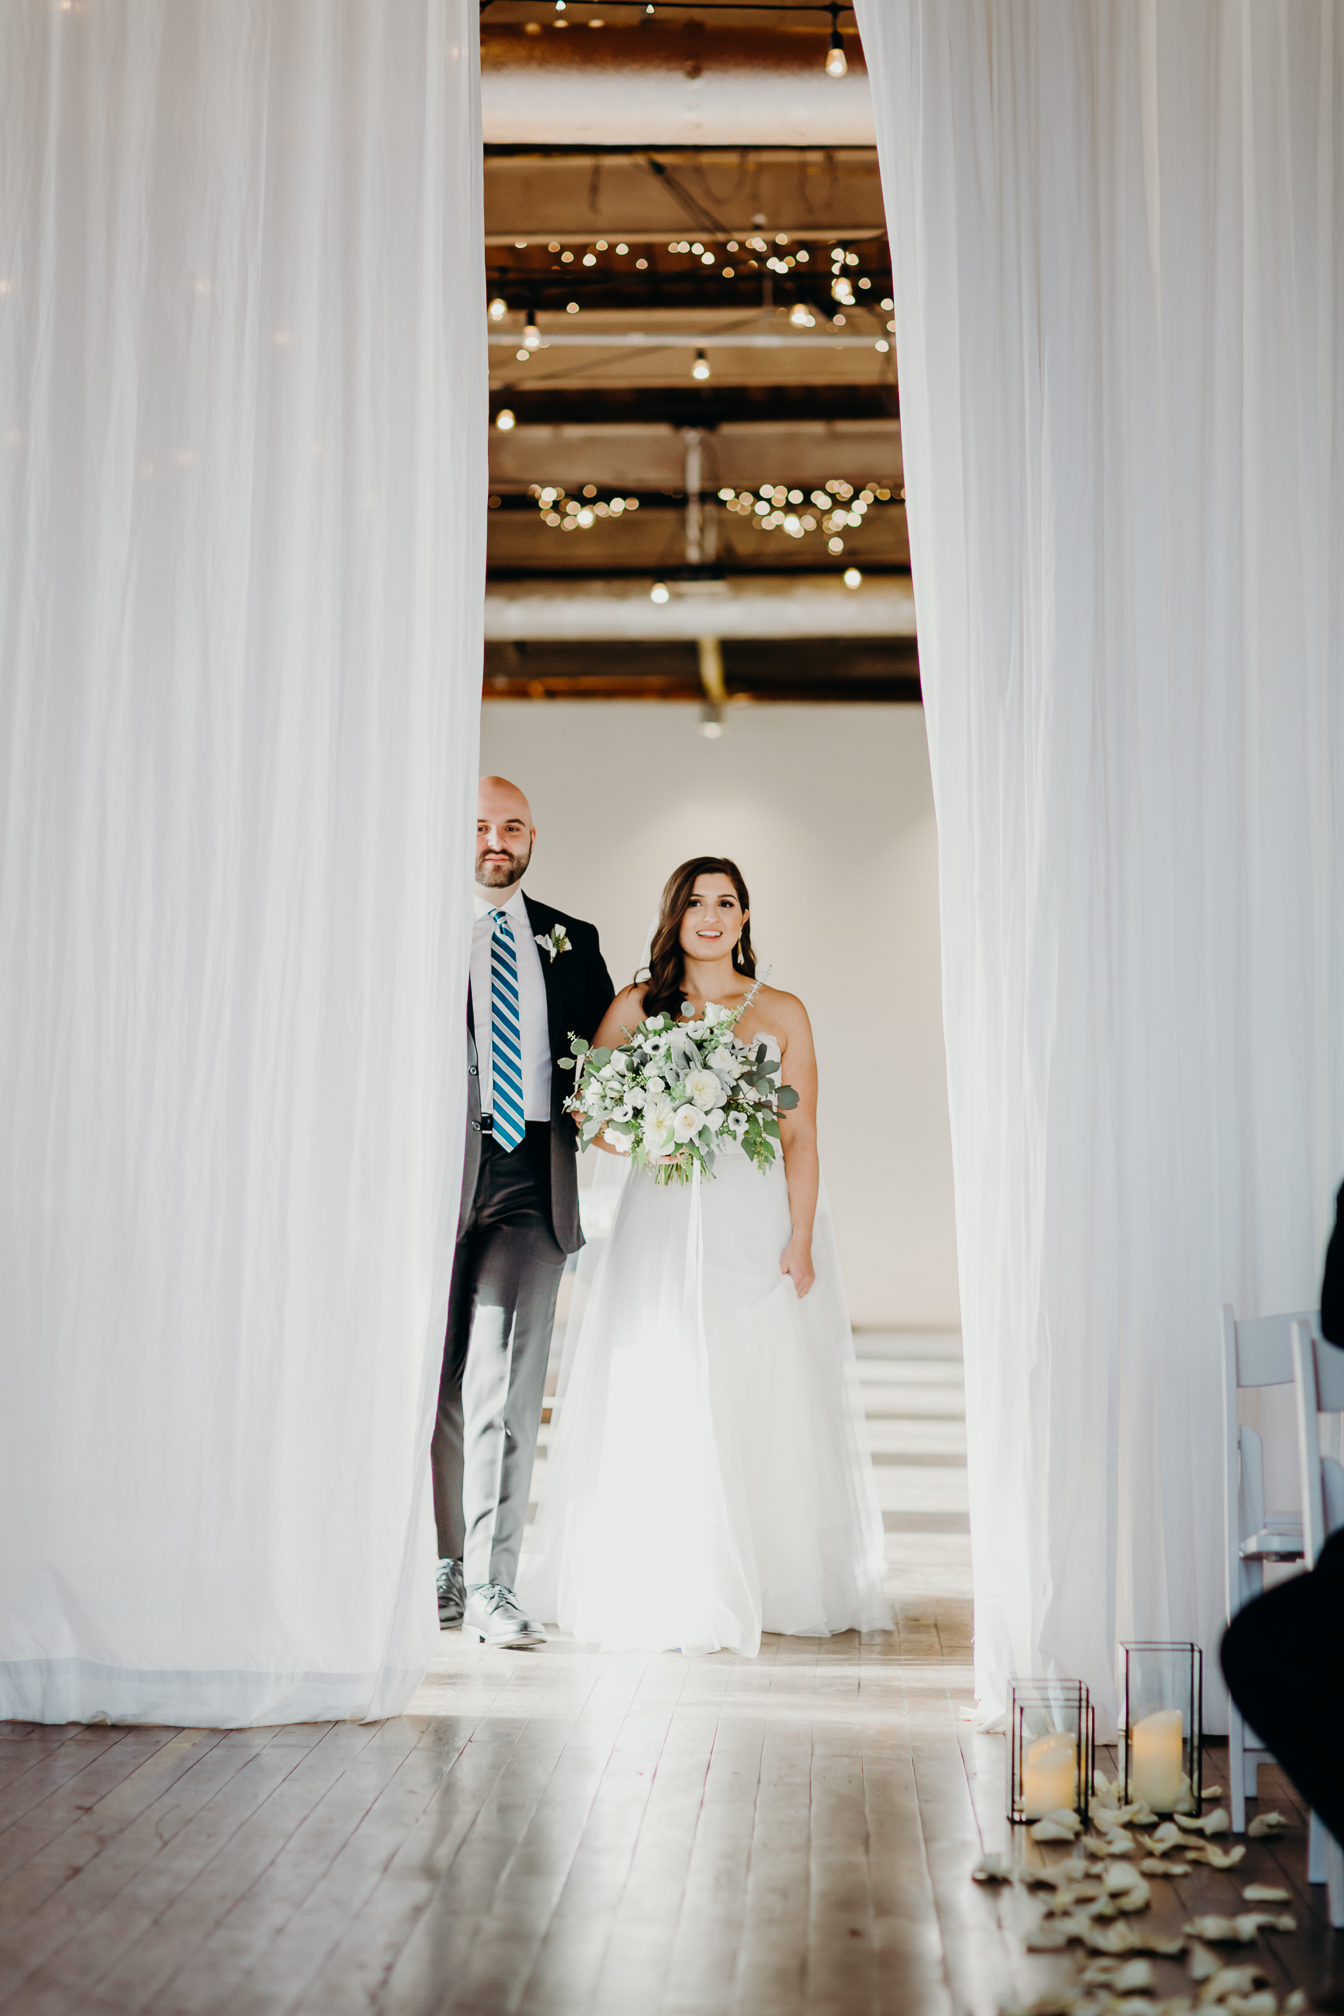 Gianna Keiko Atlanta NYC California Wedding Elopement Photographer_Sneak Peek-20.jpg